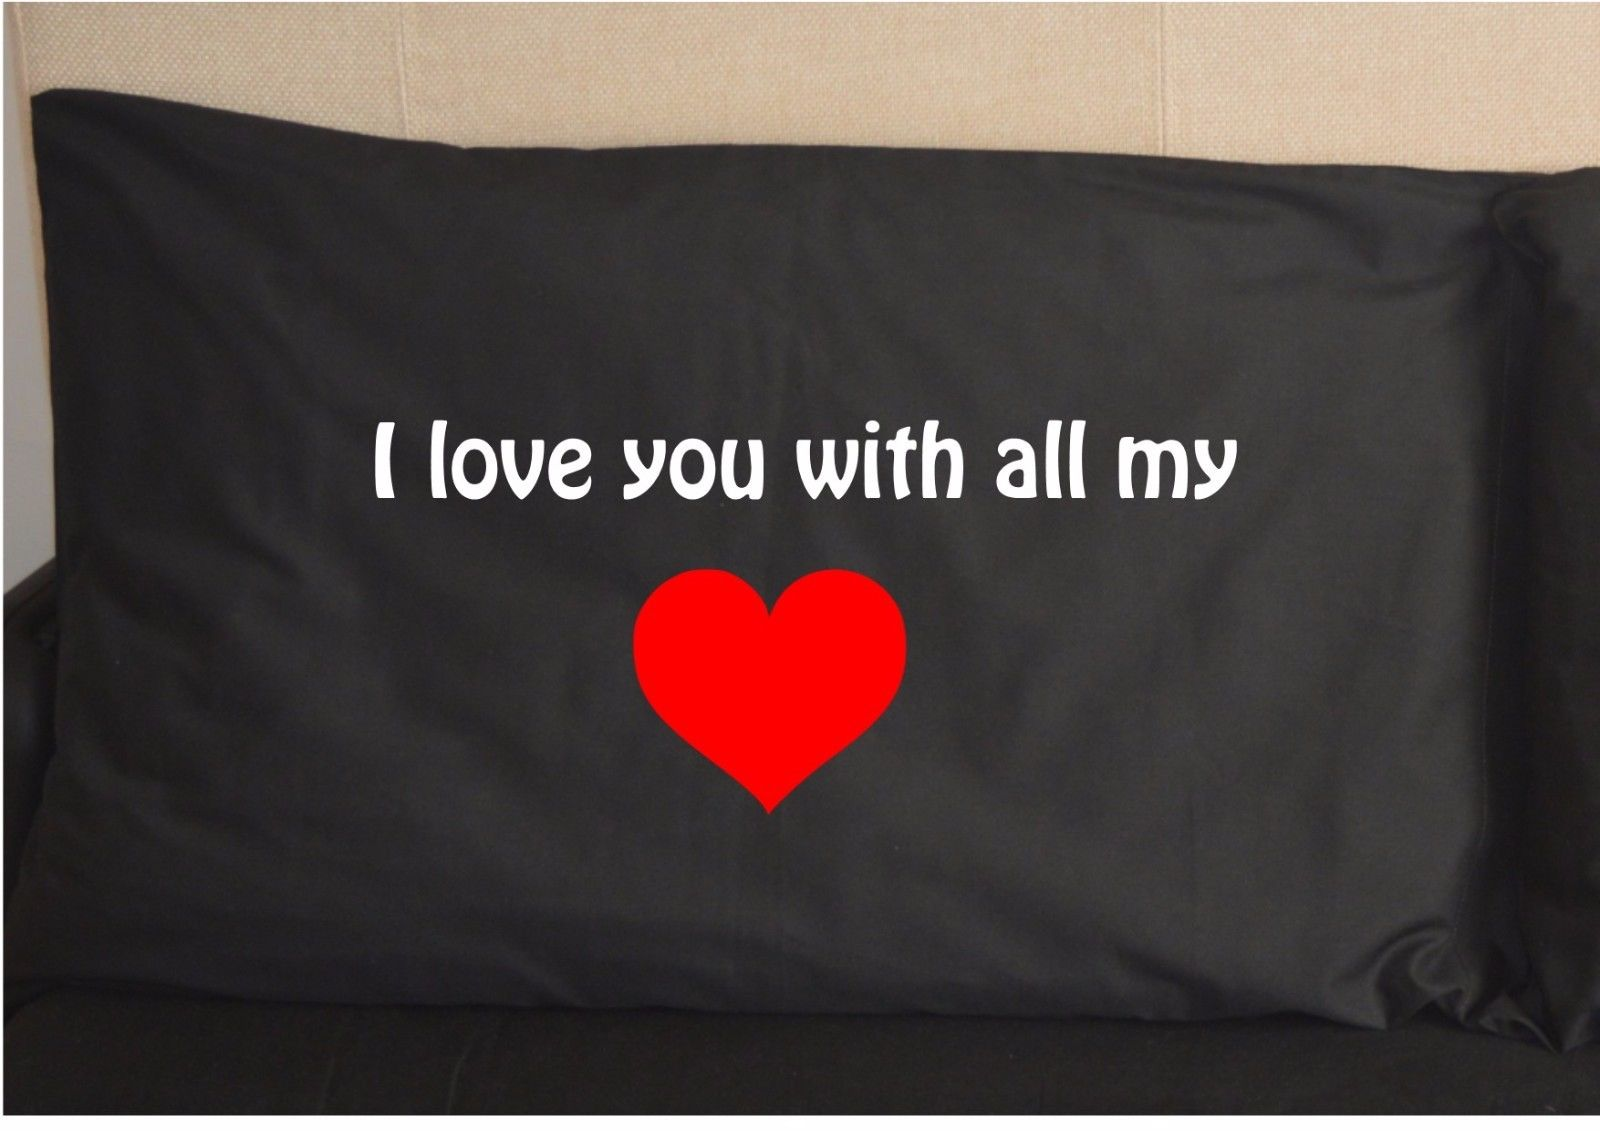 i love you with all my heart pillow case printed black pillowcase design cute